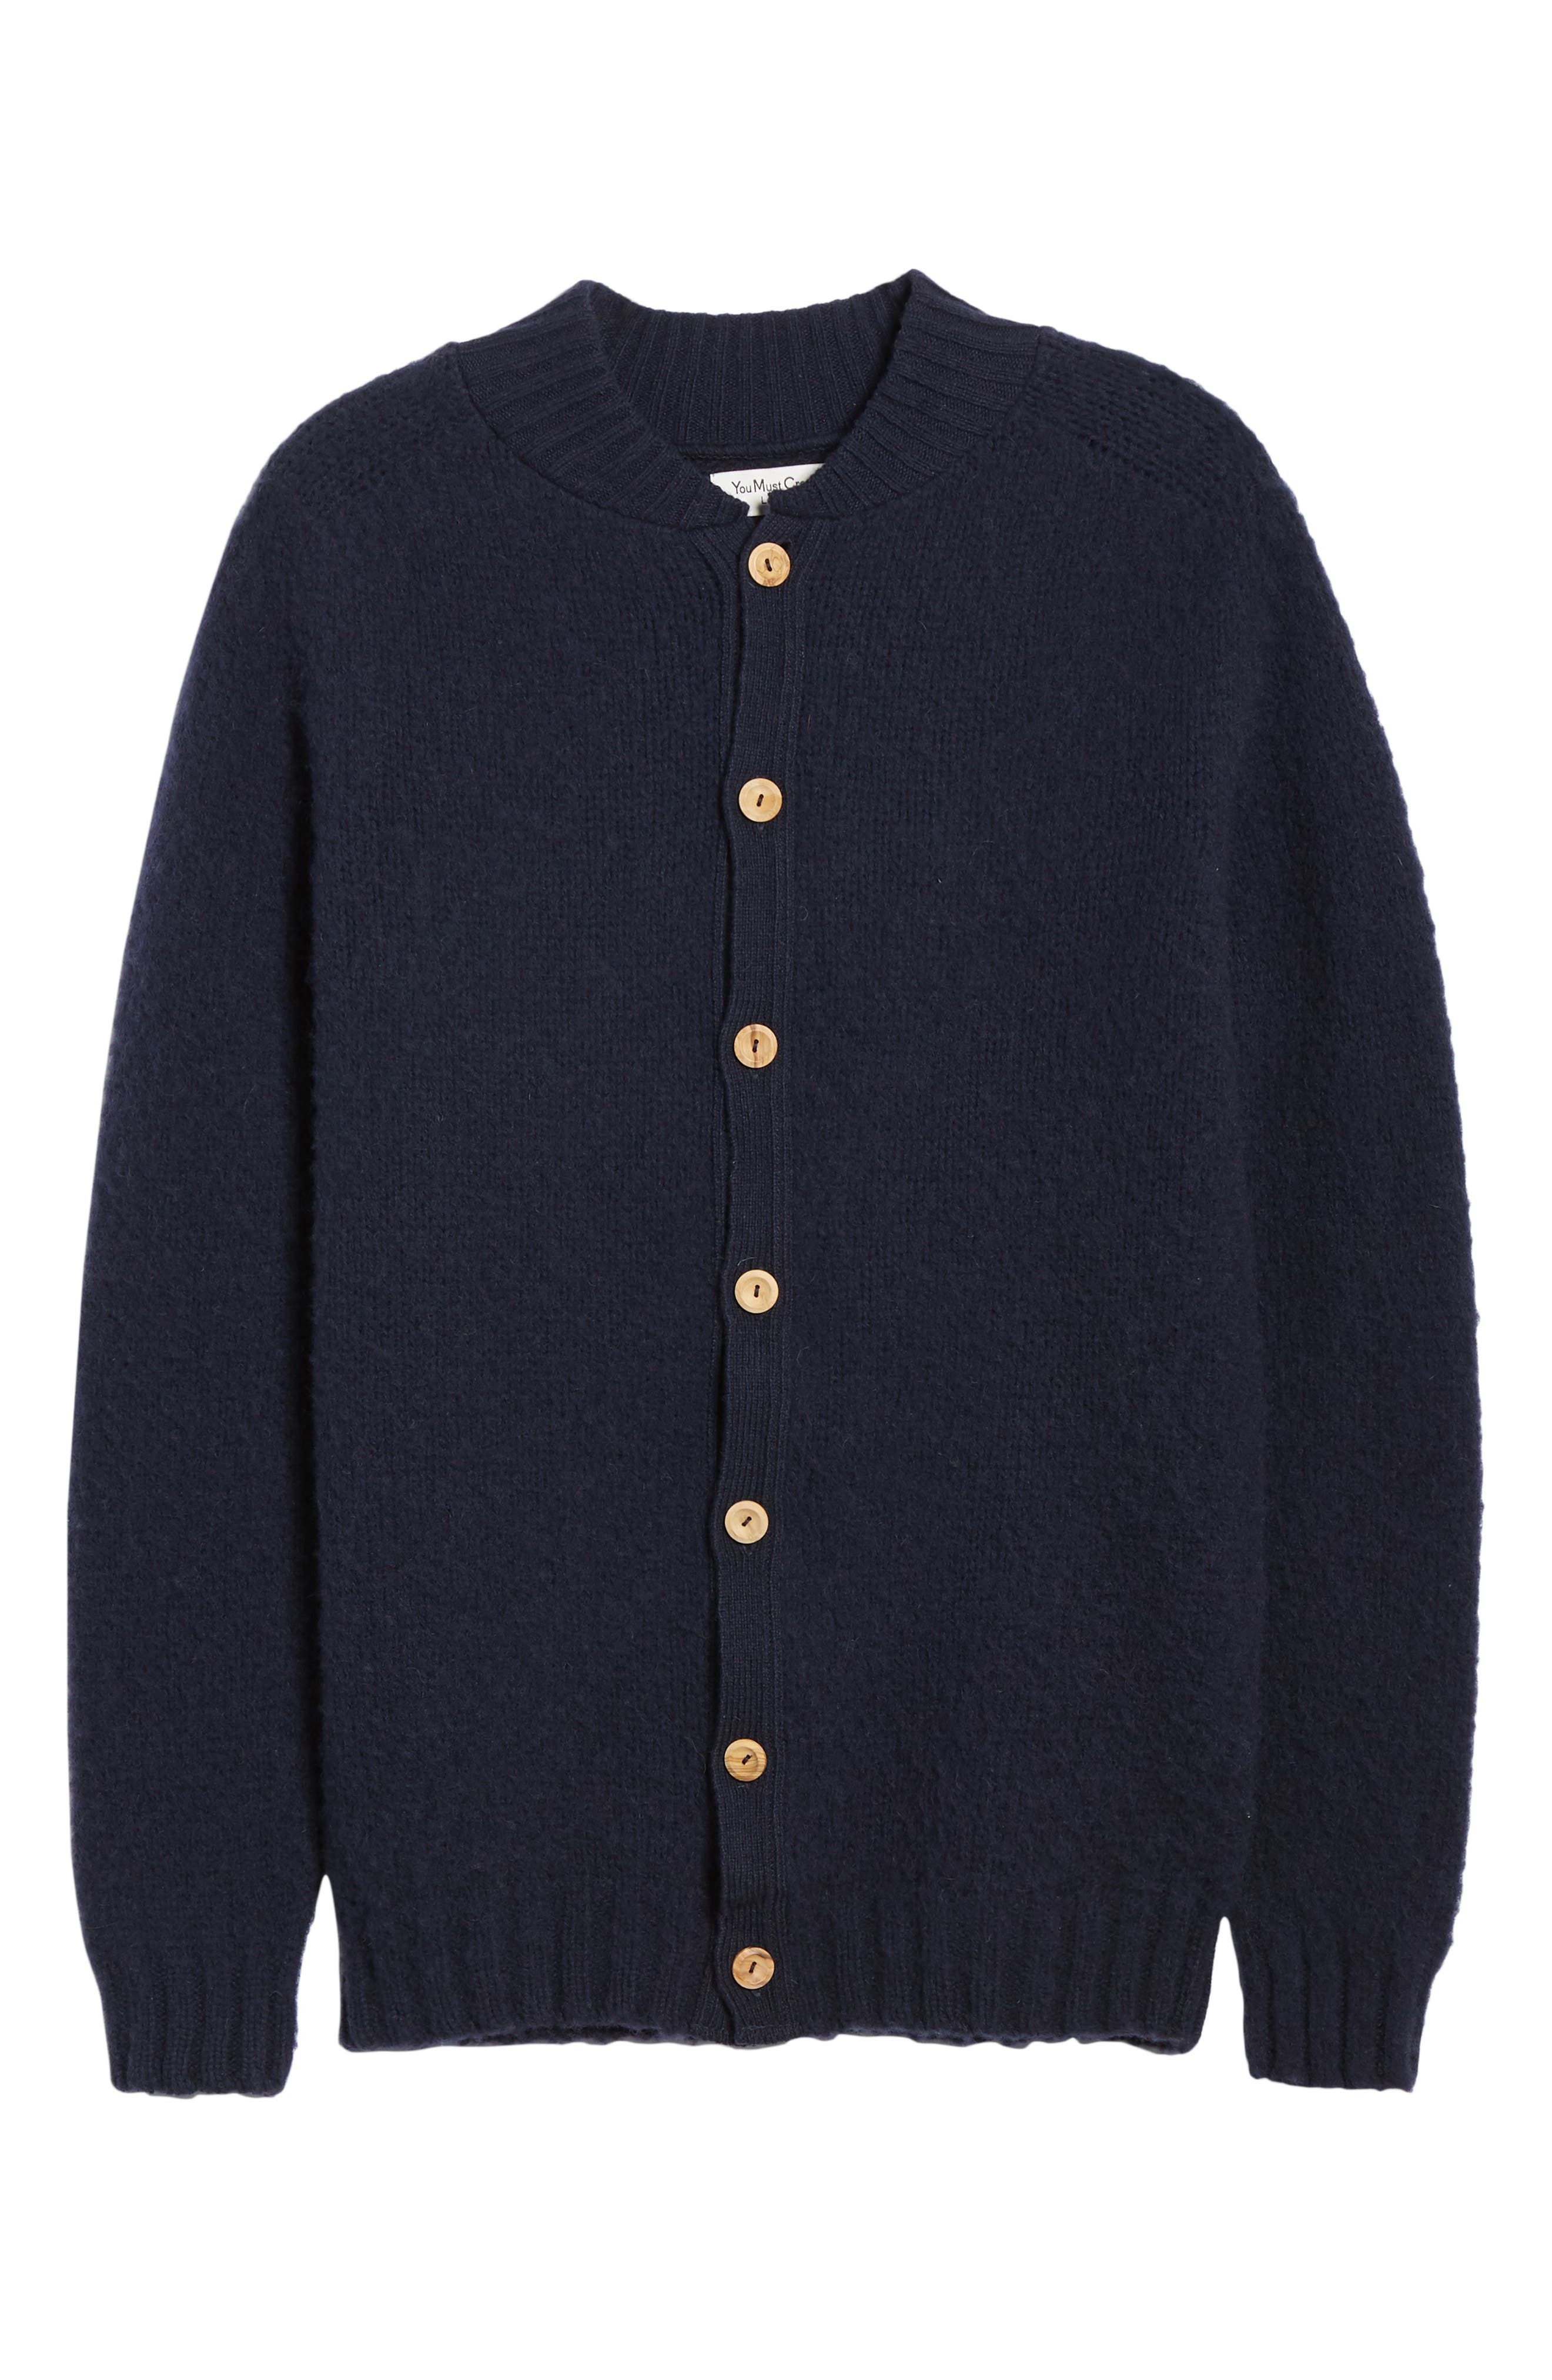 Baseball Cardy Wool Sweater,                             Alternate thumbnail 6, color,                             NAVY